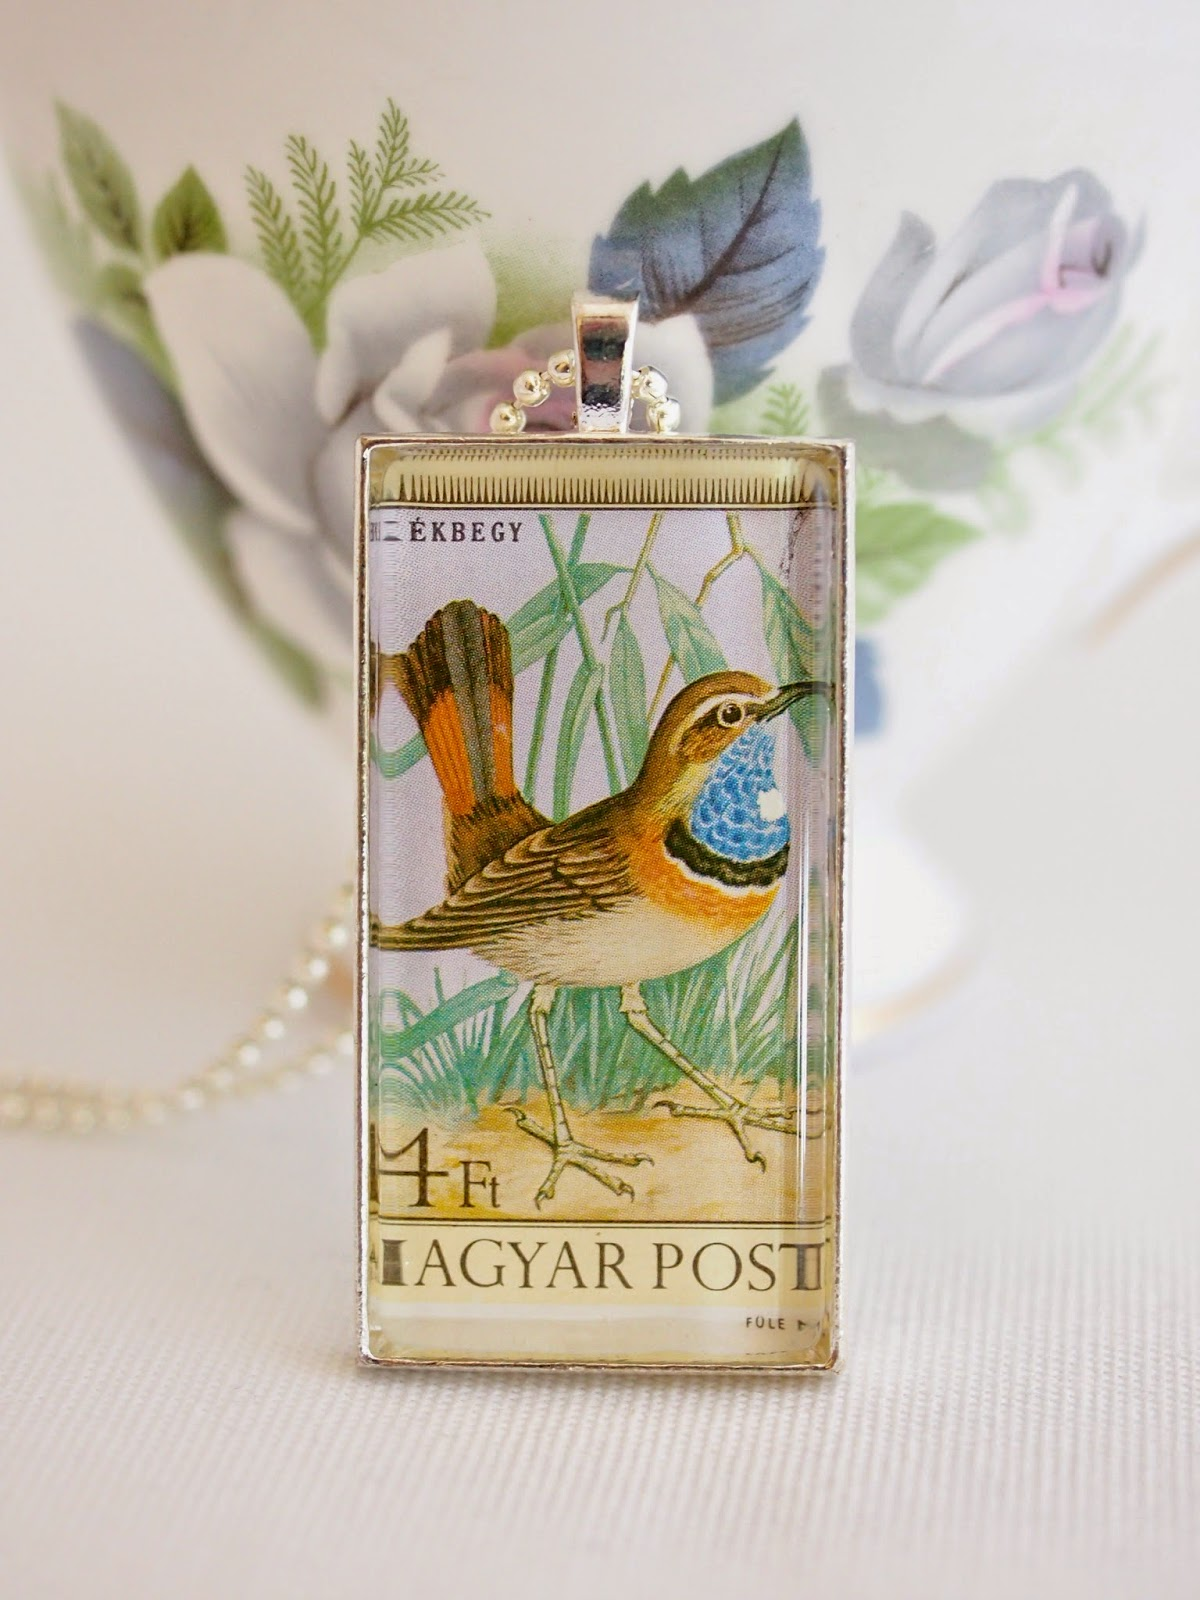 vintage 1973 magyar posta bird stamp, handmade upcycled jewelry by Starzyia on etsy.